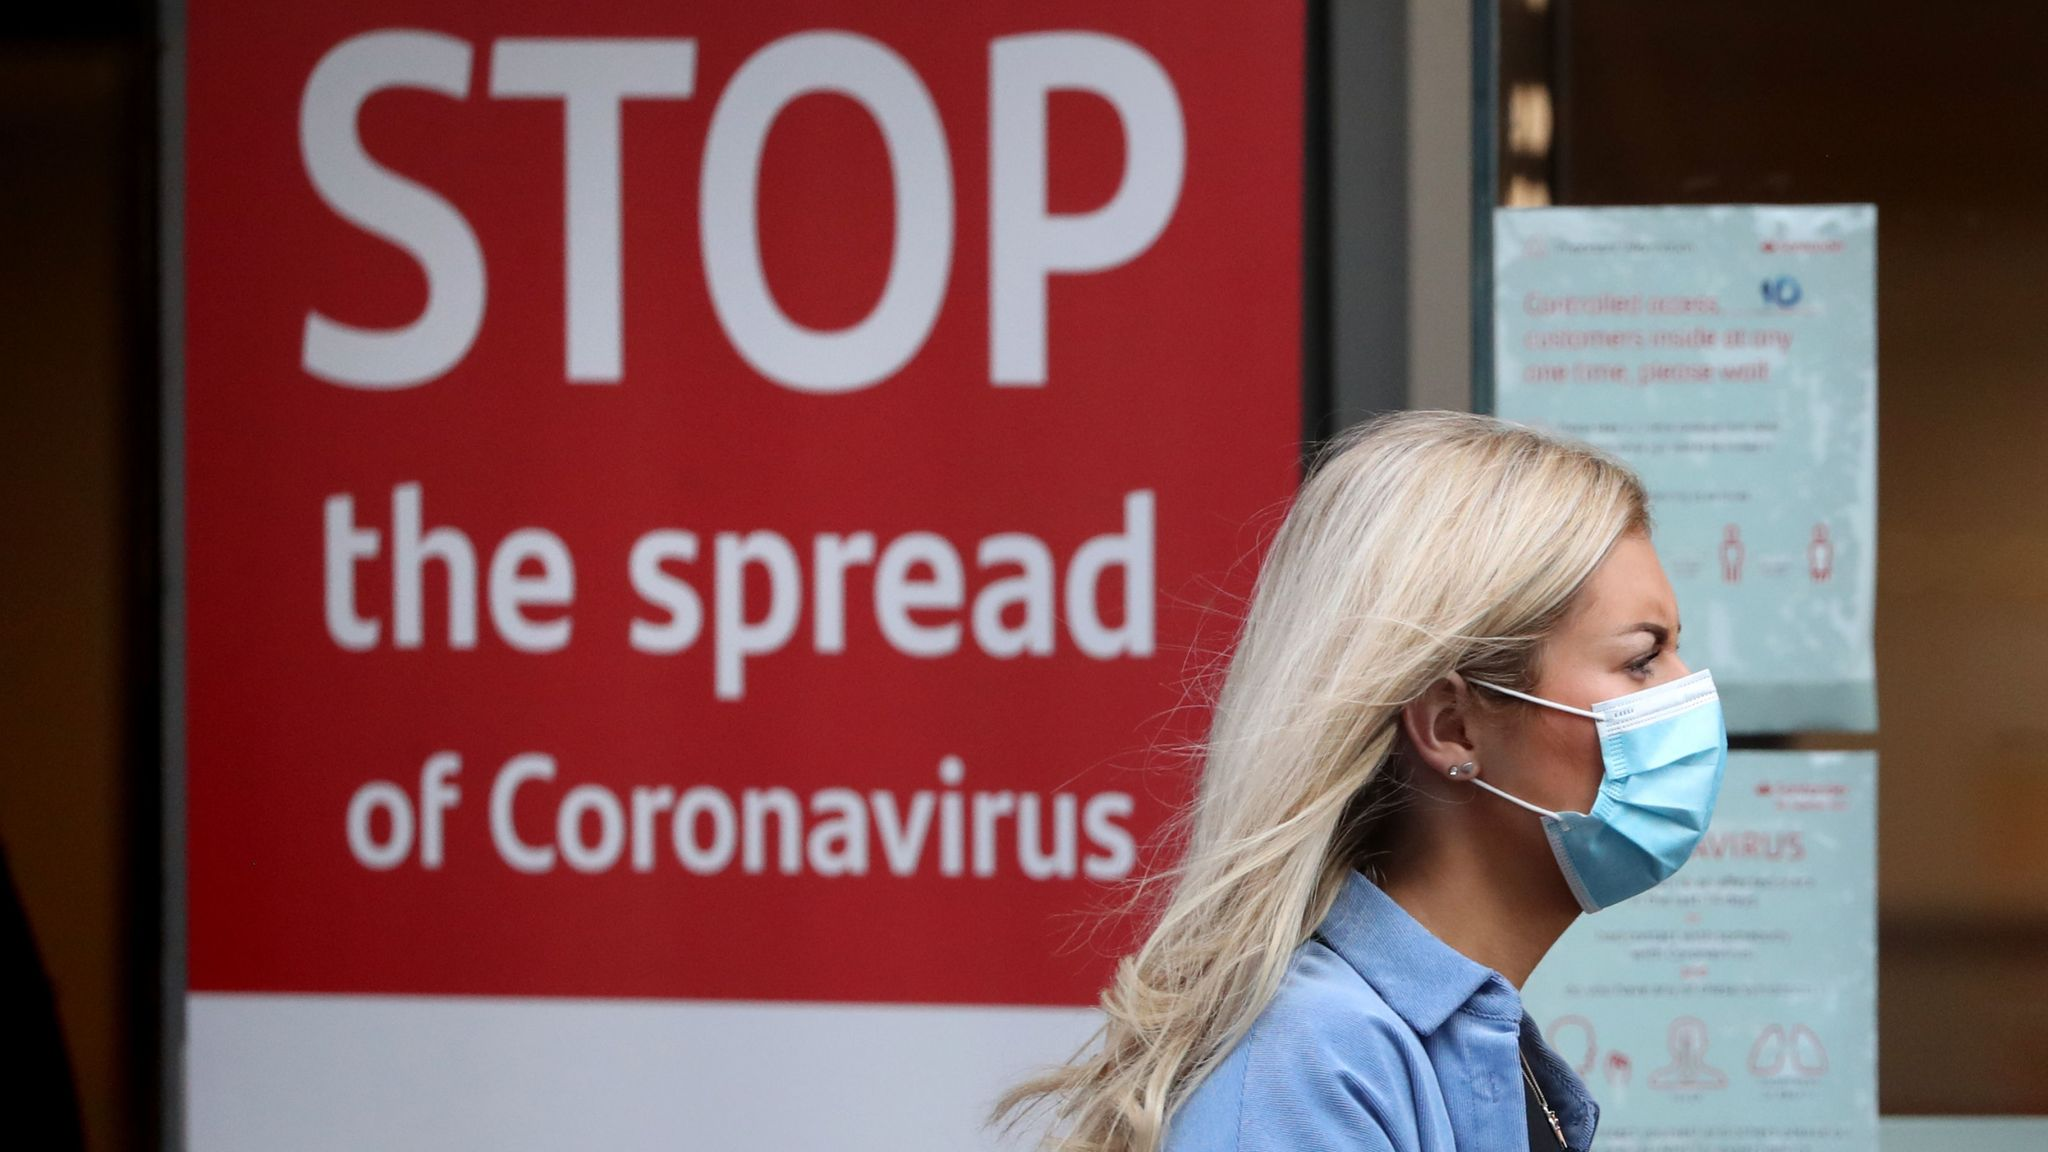 Covid 19 Uk Records Another 27 301 Coronavirus Cases And 376 Deaths Uk News Sky News